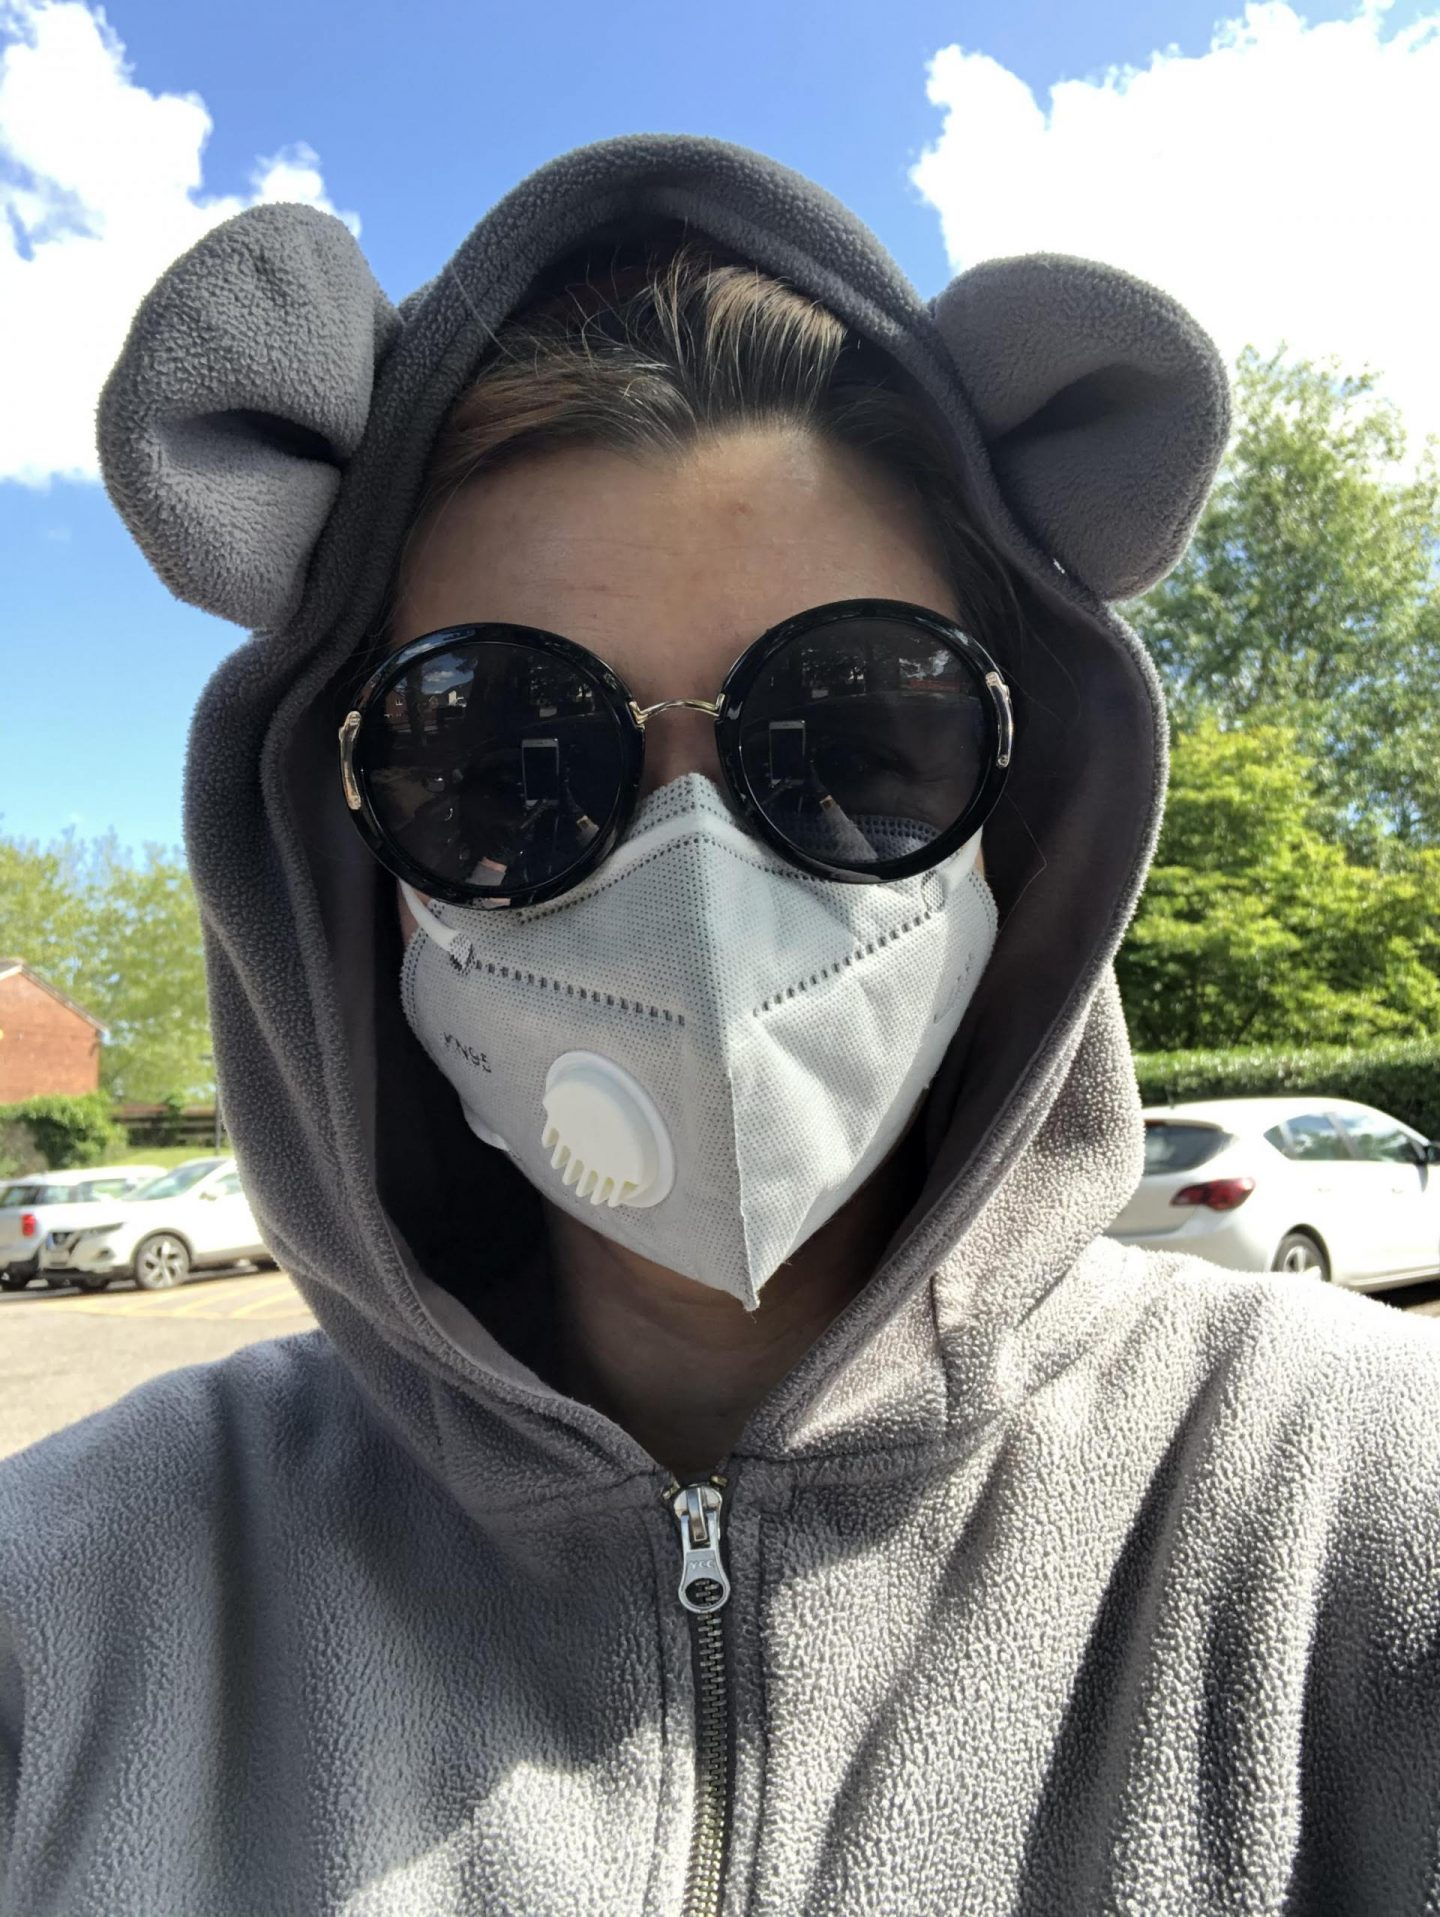 Covid cover up: mask, sunglasses and onesie